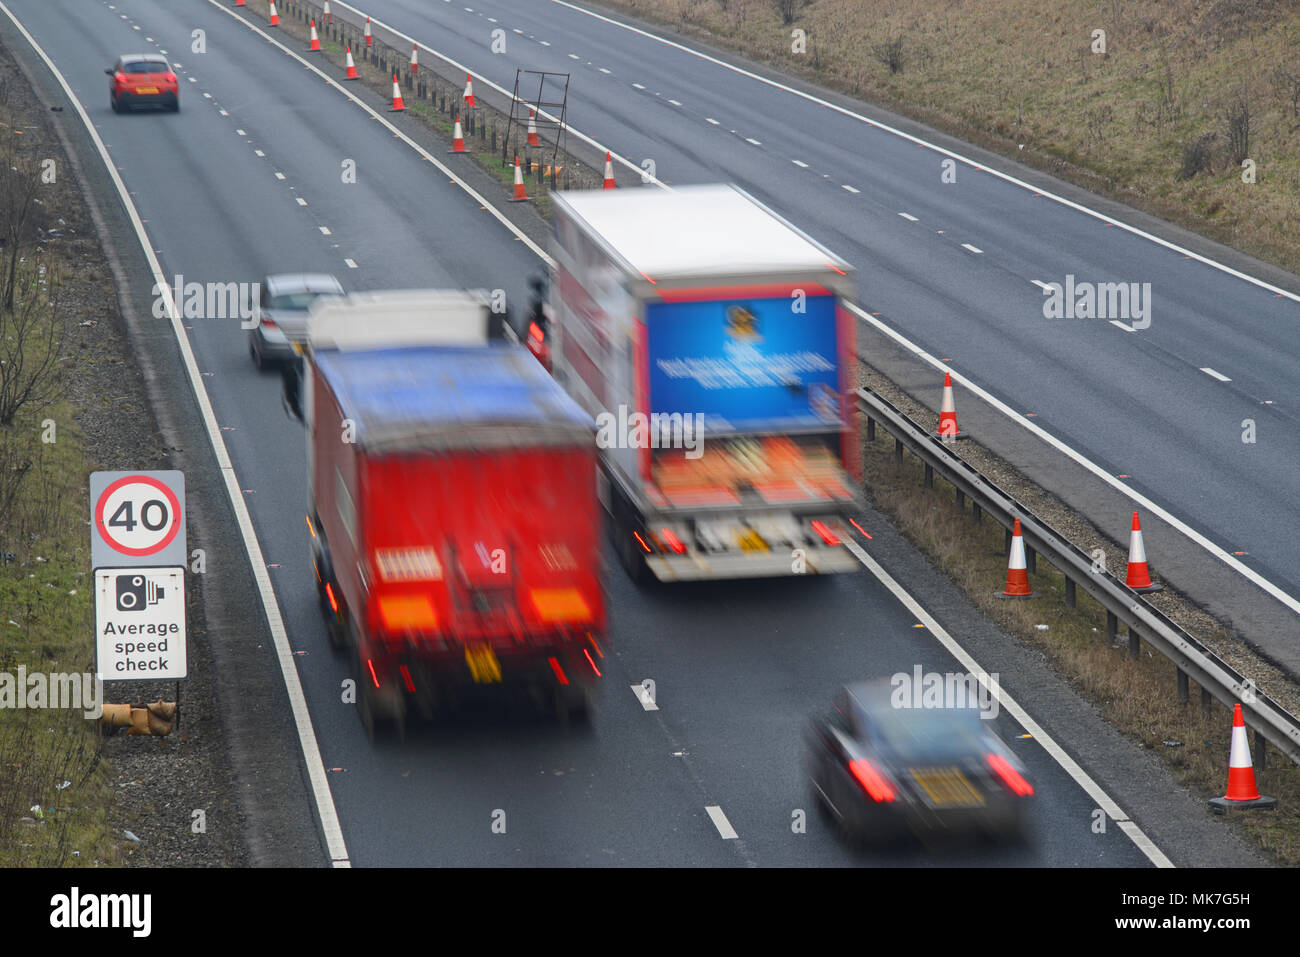 traffic passing average speed cameras at roadworks leeds yorkshire united kingdom - Stock Image